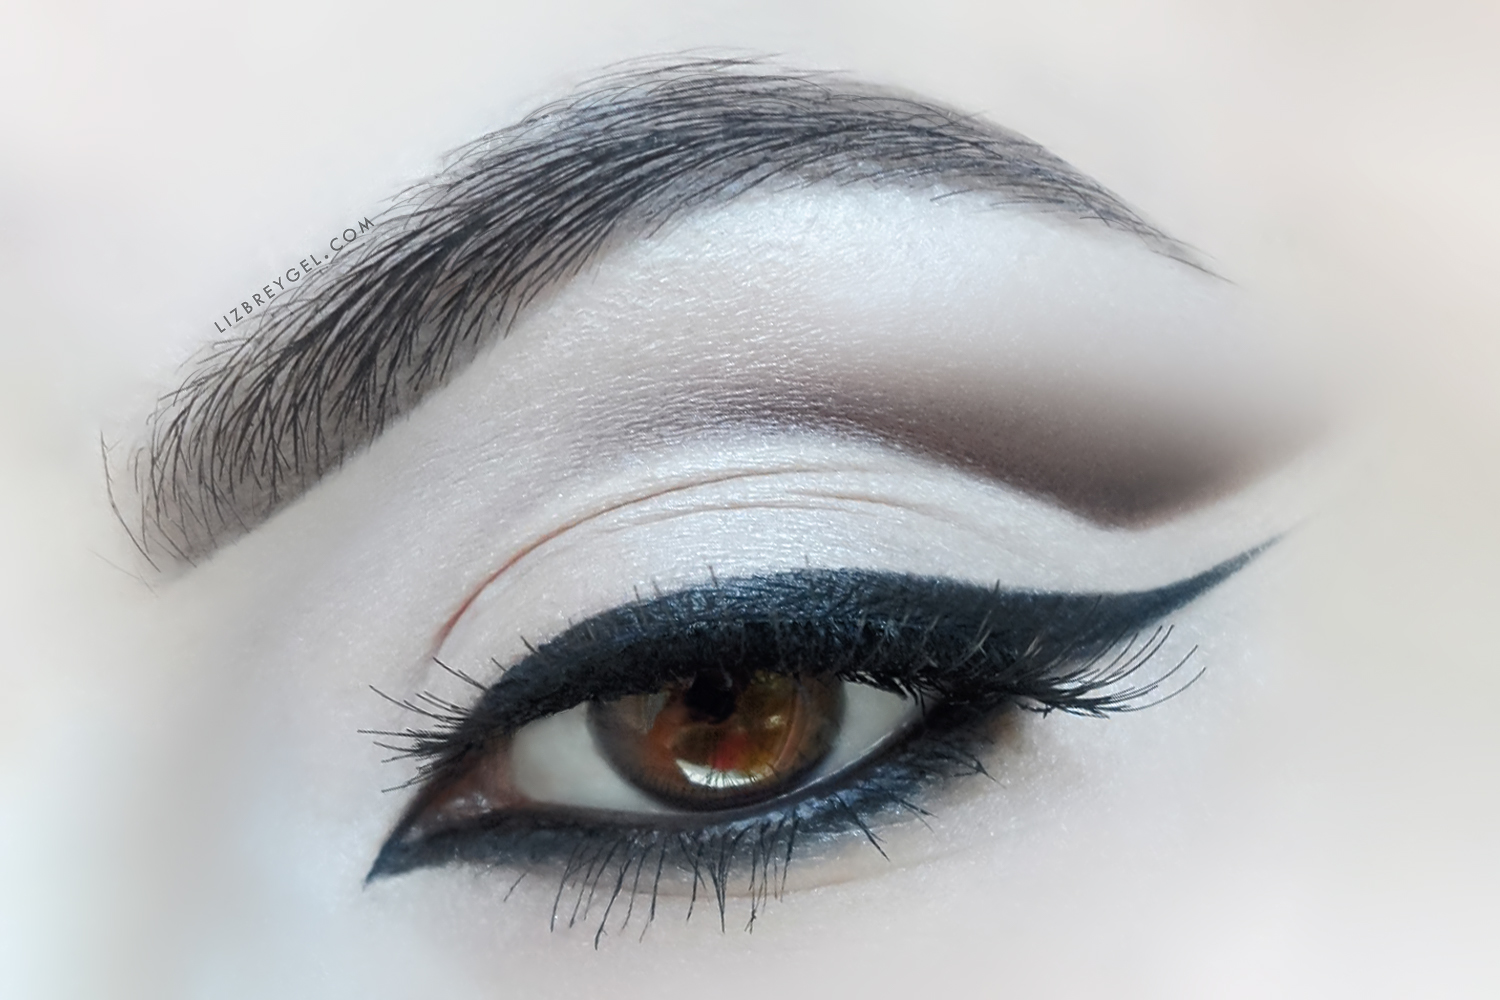 a close up image of n eye with an elegant bridal makeup look